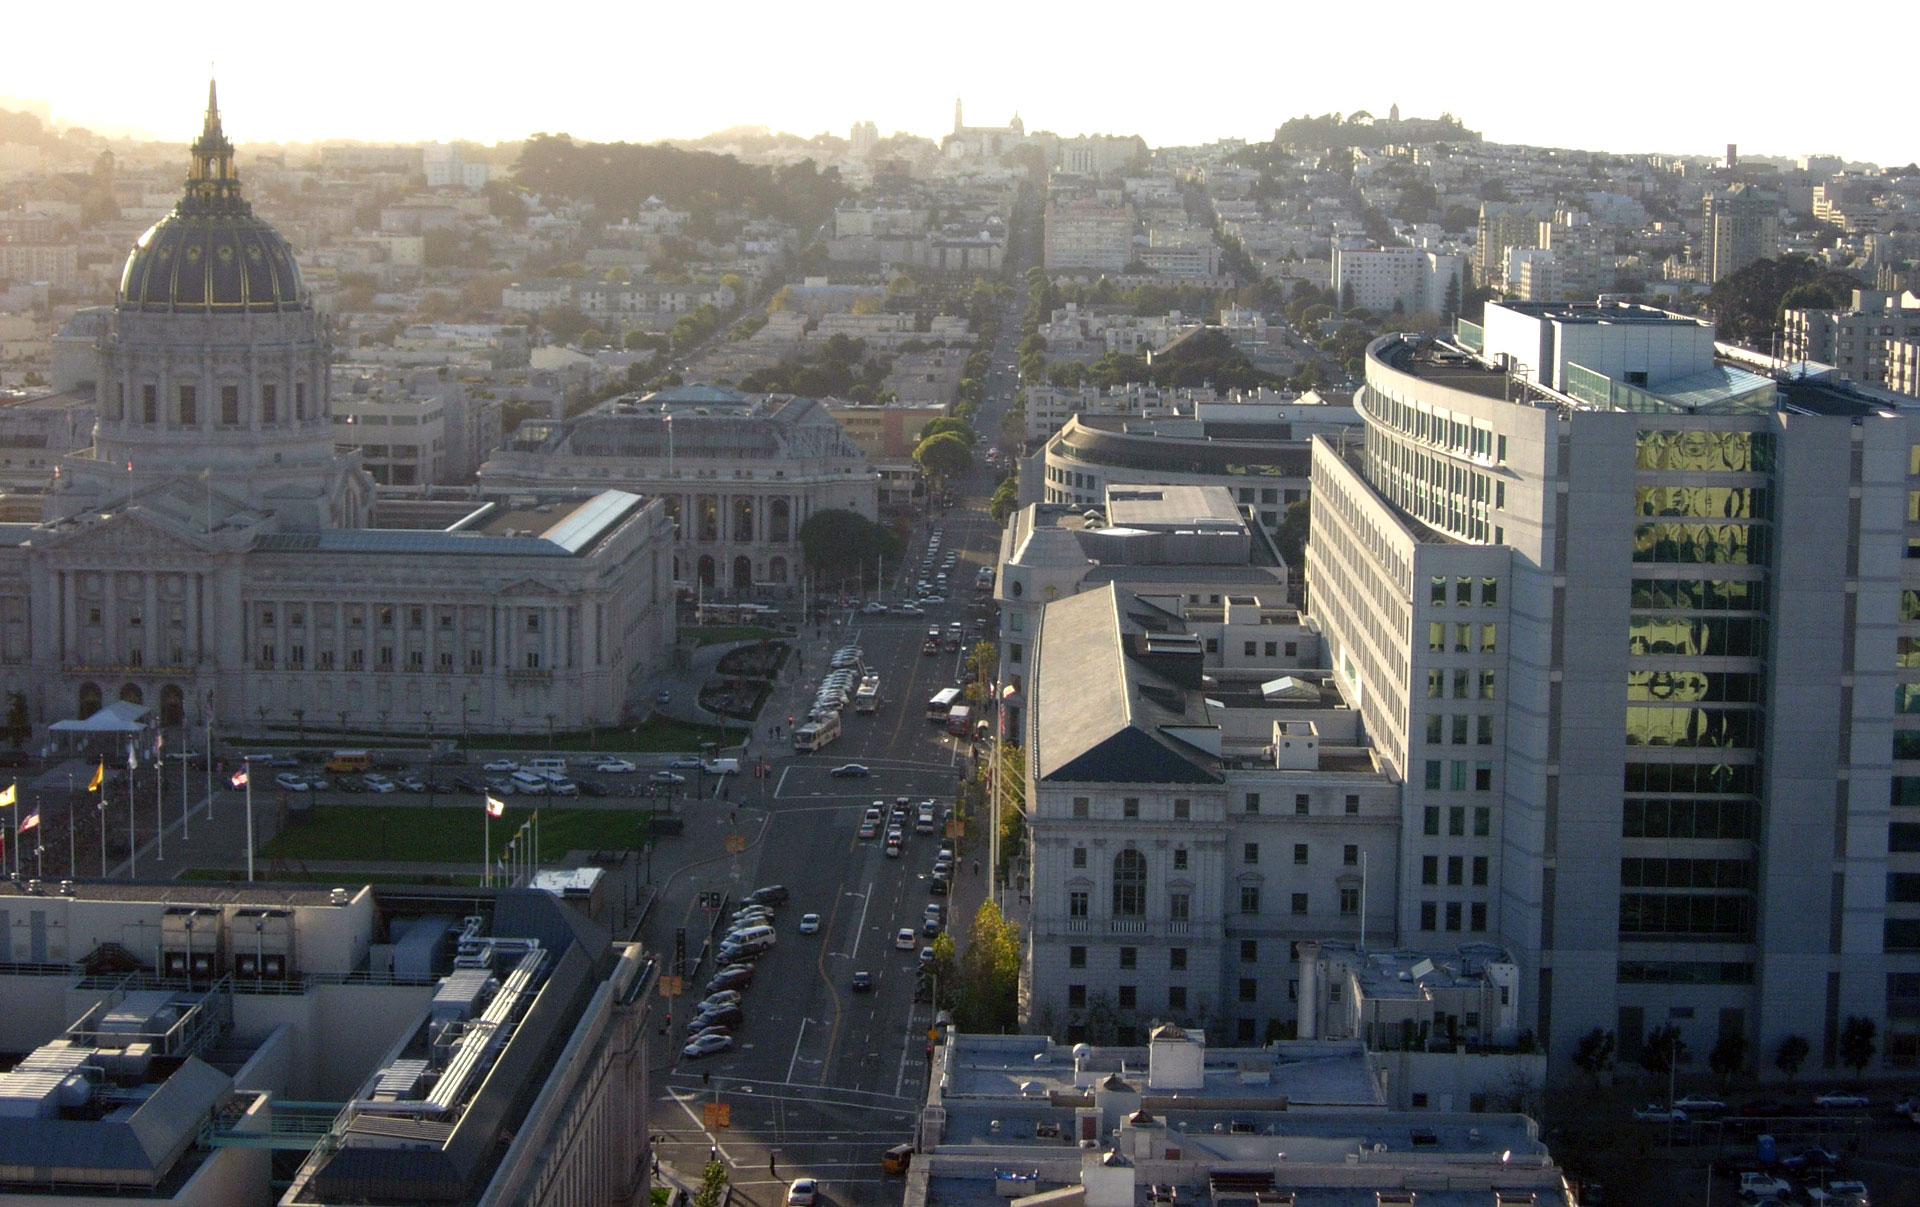 Superior Court of San Francisco.